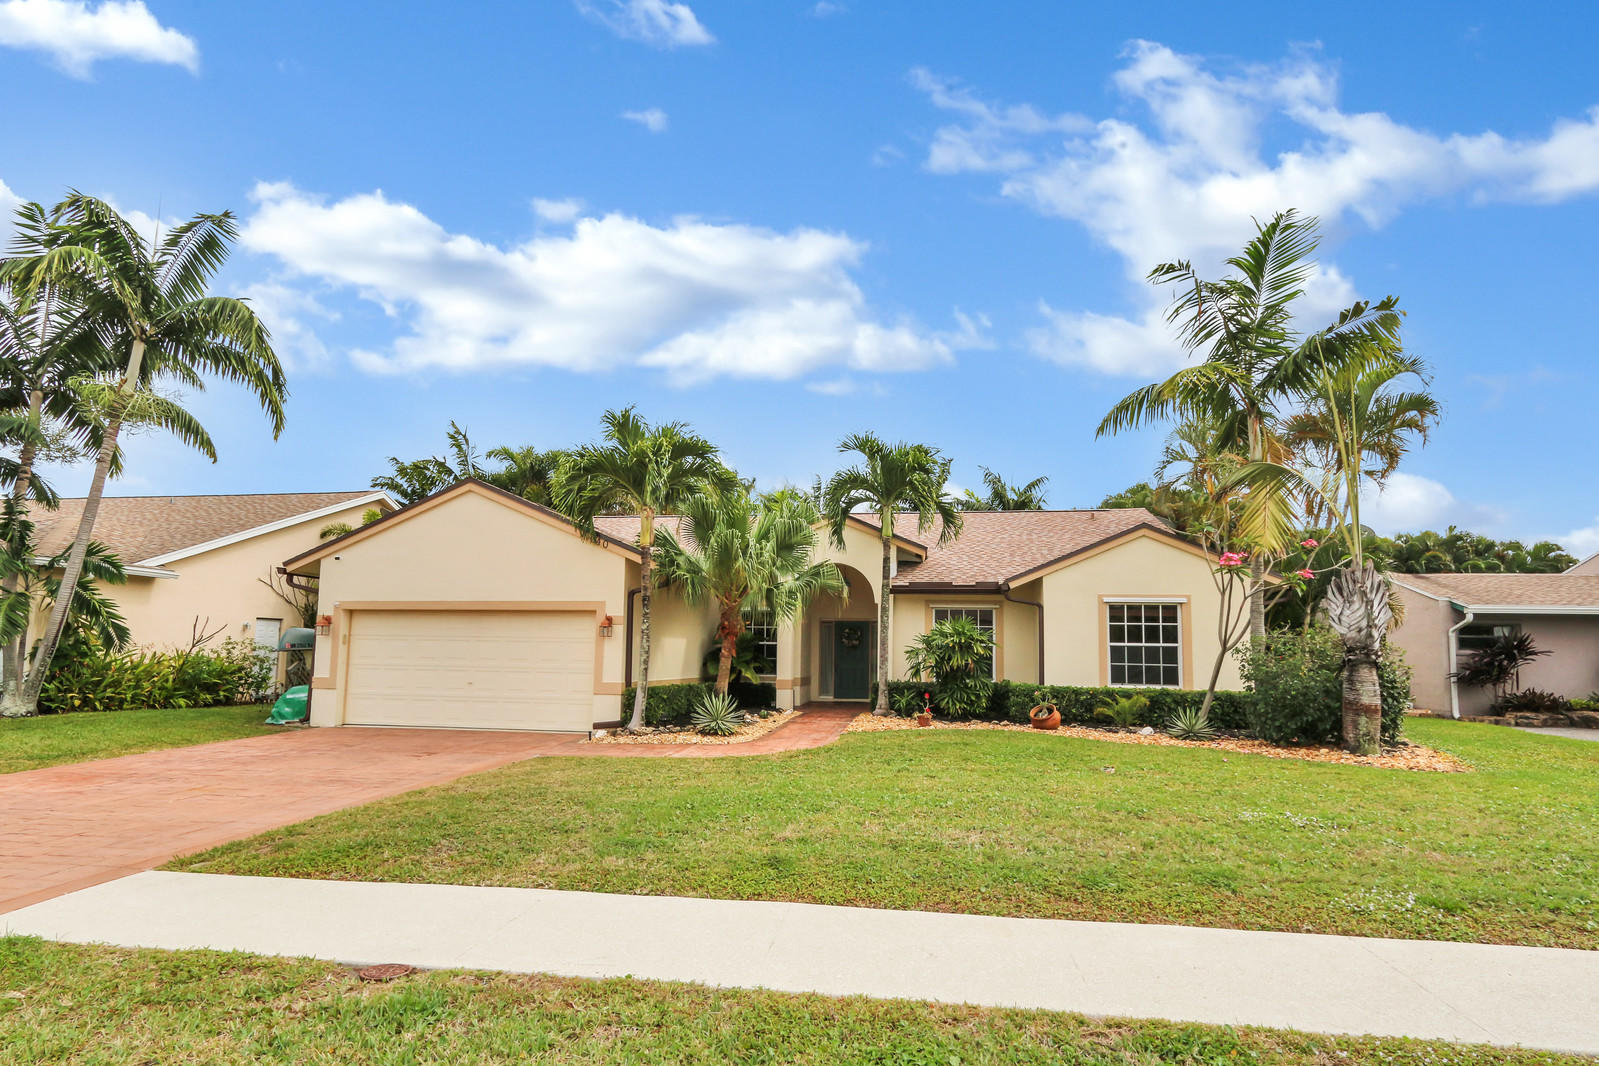 640 NE 15th Place, Boynton Beach in Palm Beach County, FL 33435 Home for Sale